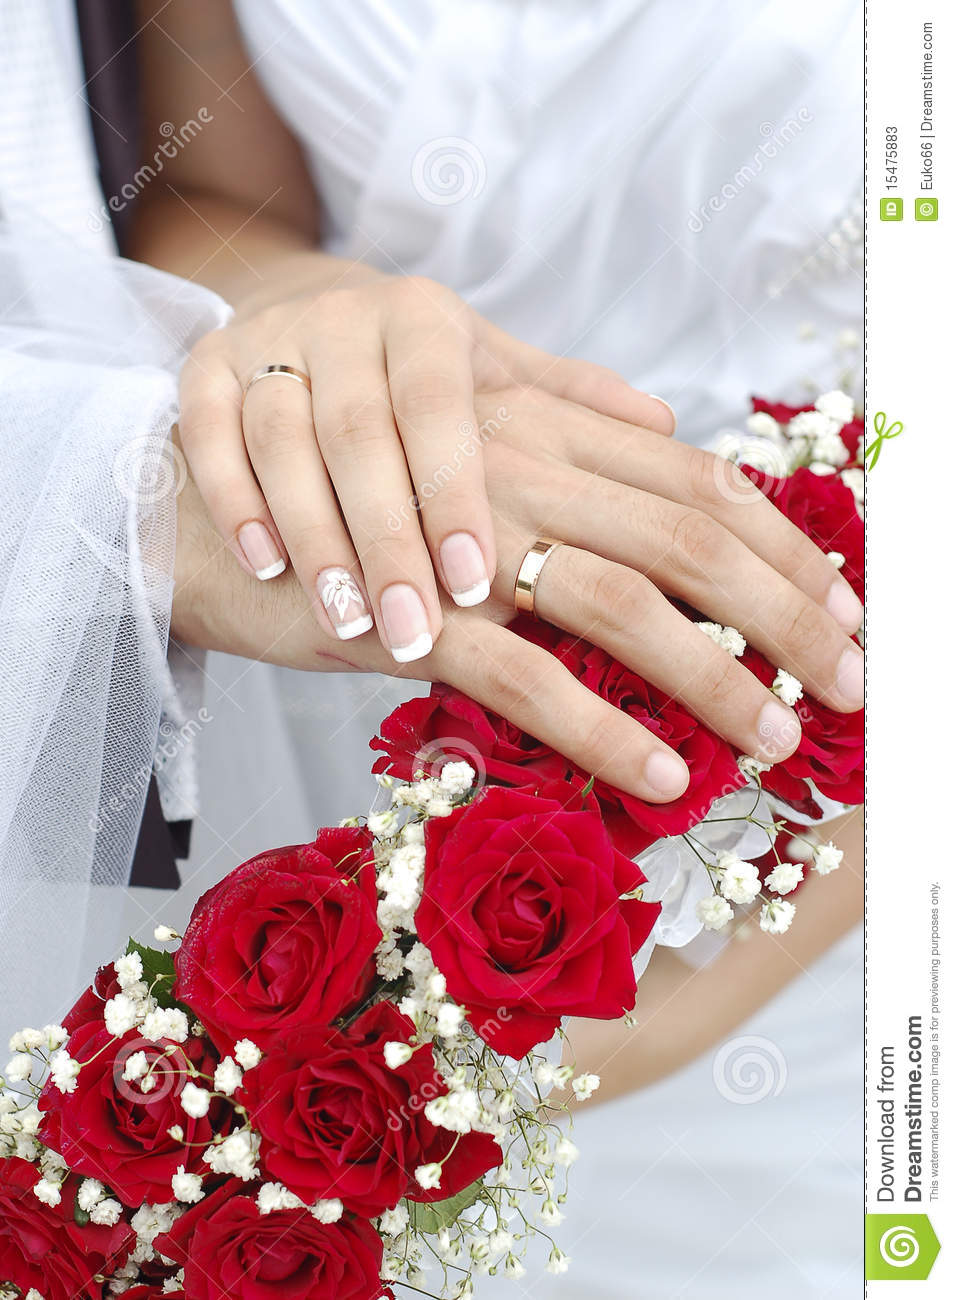 Bridal Groom Wedding Hands On Bouquet Stock Photos Image